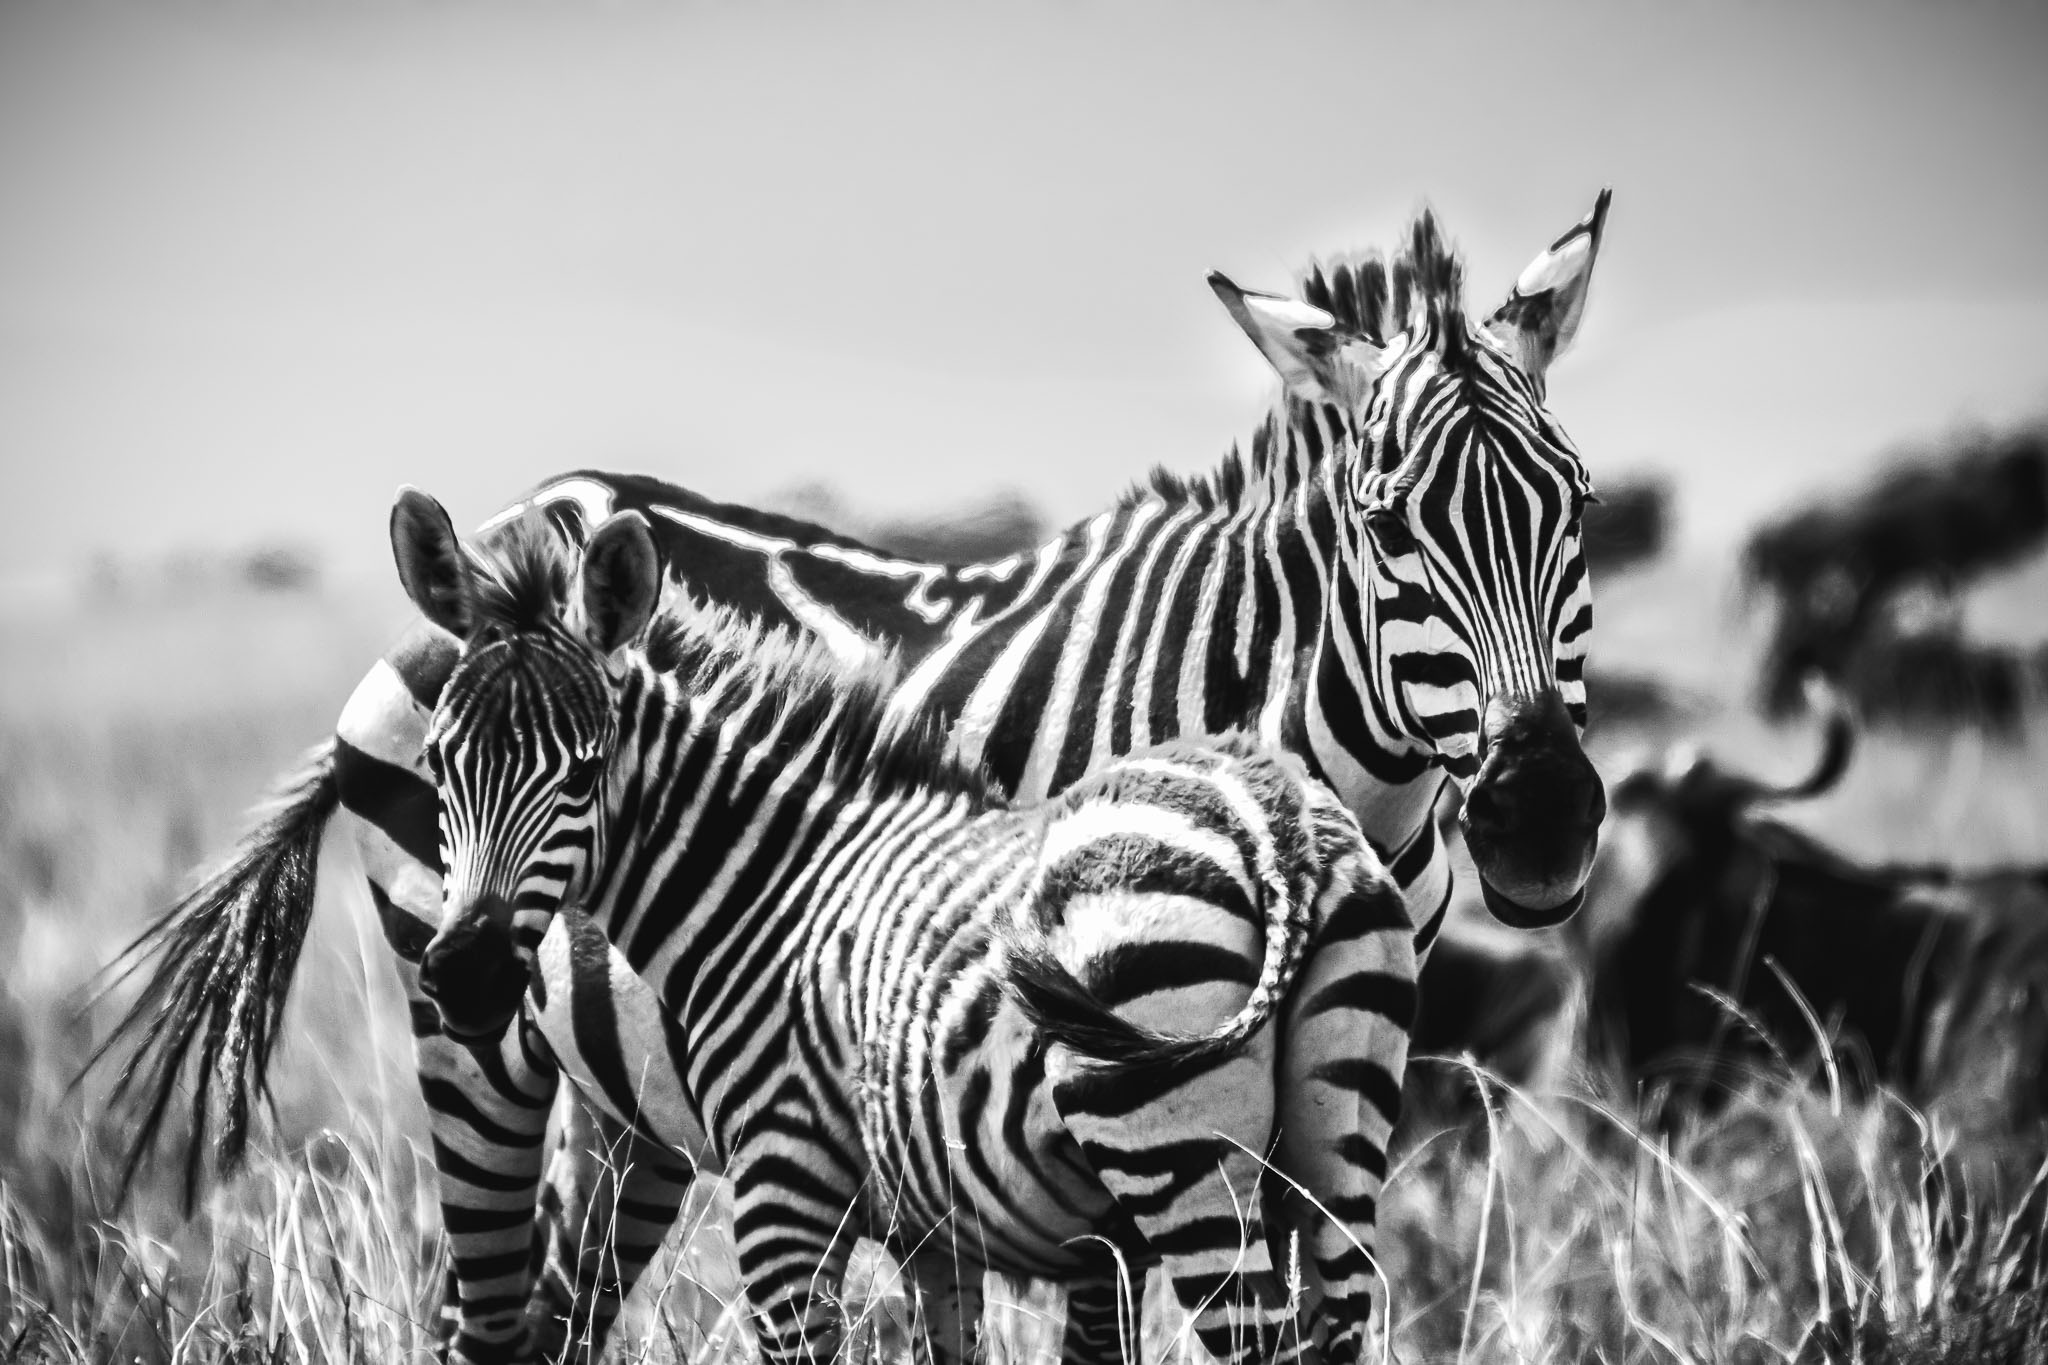 The stripes of a zebra is designed to blend into the stripes of another when seen by a predator from afar. Normally the young are a bit more brown than black but I probably wasn't sure which end was the mother and which was the young until I got home and went through my images.